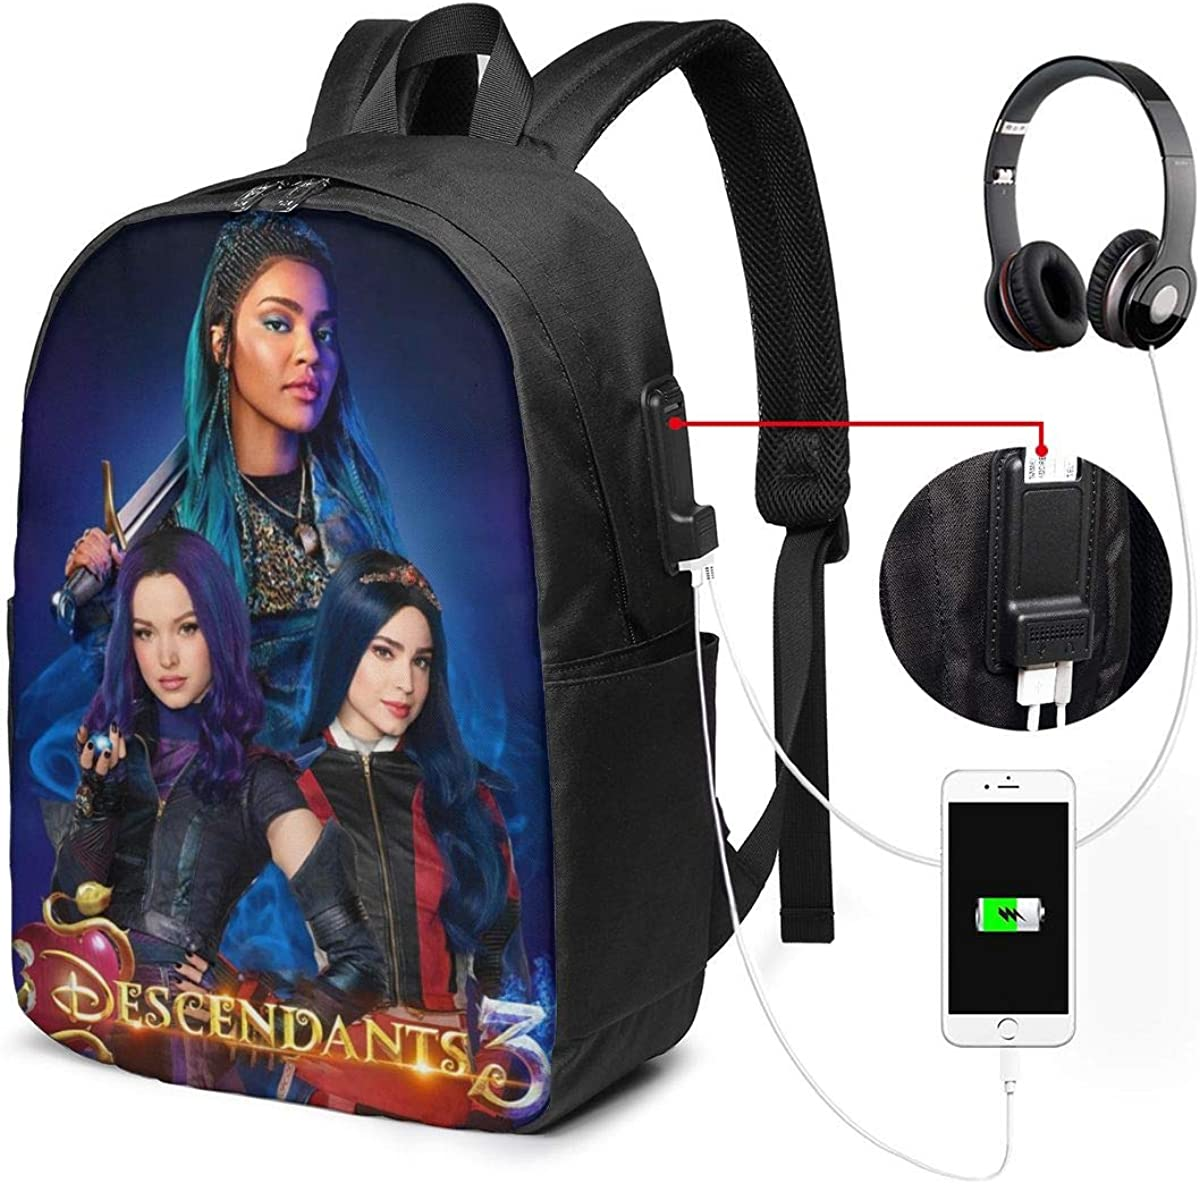 Chargers Phones SD Cards USB YiwuYshi Descendants 3 Harry Universal Cable Storage Bag for Travel and Household Goods Storage for Cables